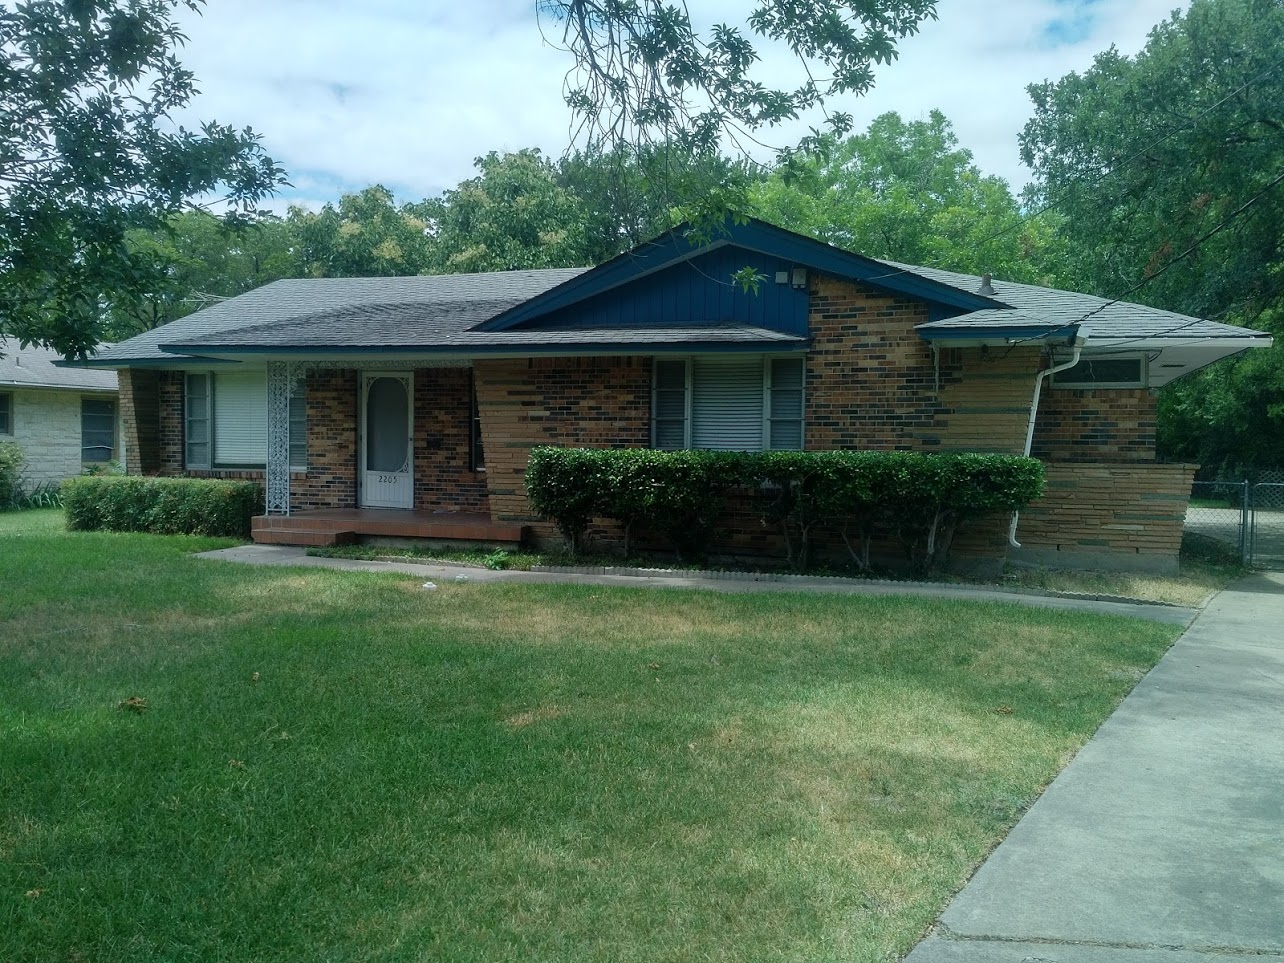 $1695, 3 Bed 2 Bath Mid 1950s Ranch Classic in Classy Oak Cliff